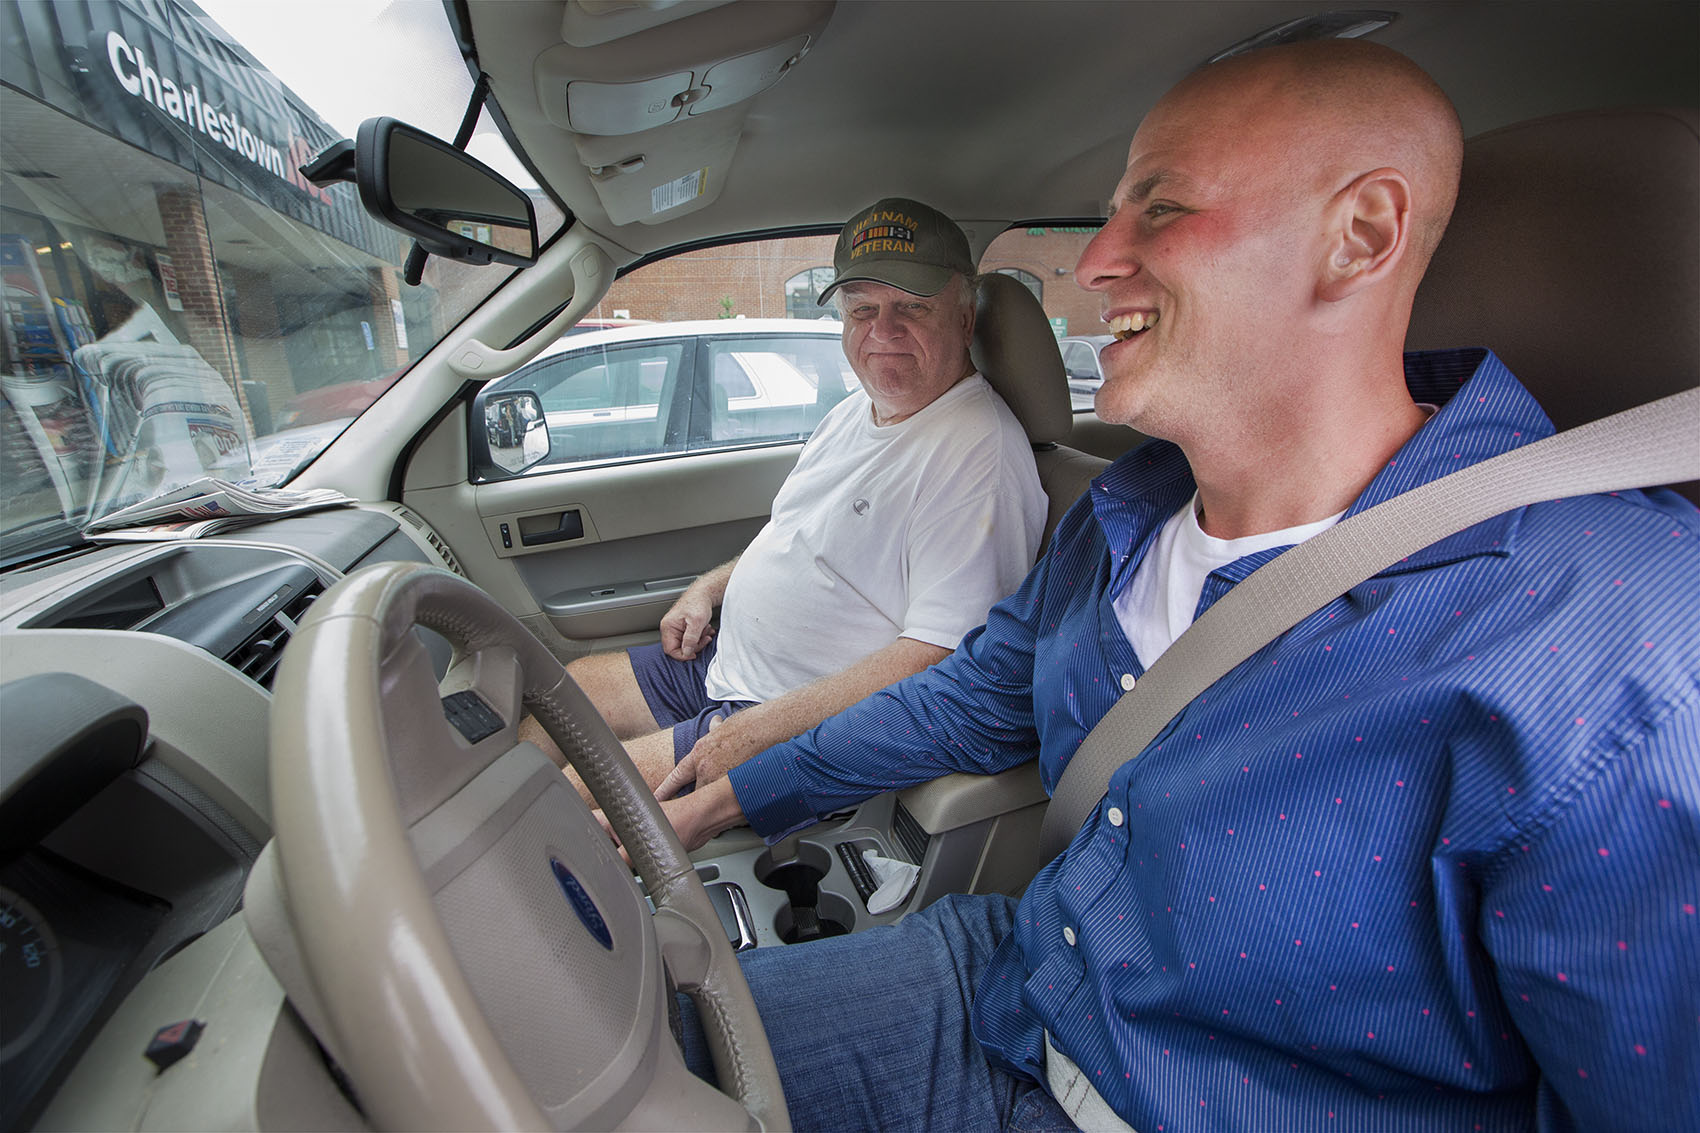 In the parking lot of the Bunker Hill Shopping Mall, Joe Donovan gets a driving lesson from his father, Joe Sr. Joe had never gotten his license before he was incarcerated. (Jesse Costa/WBUR)